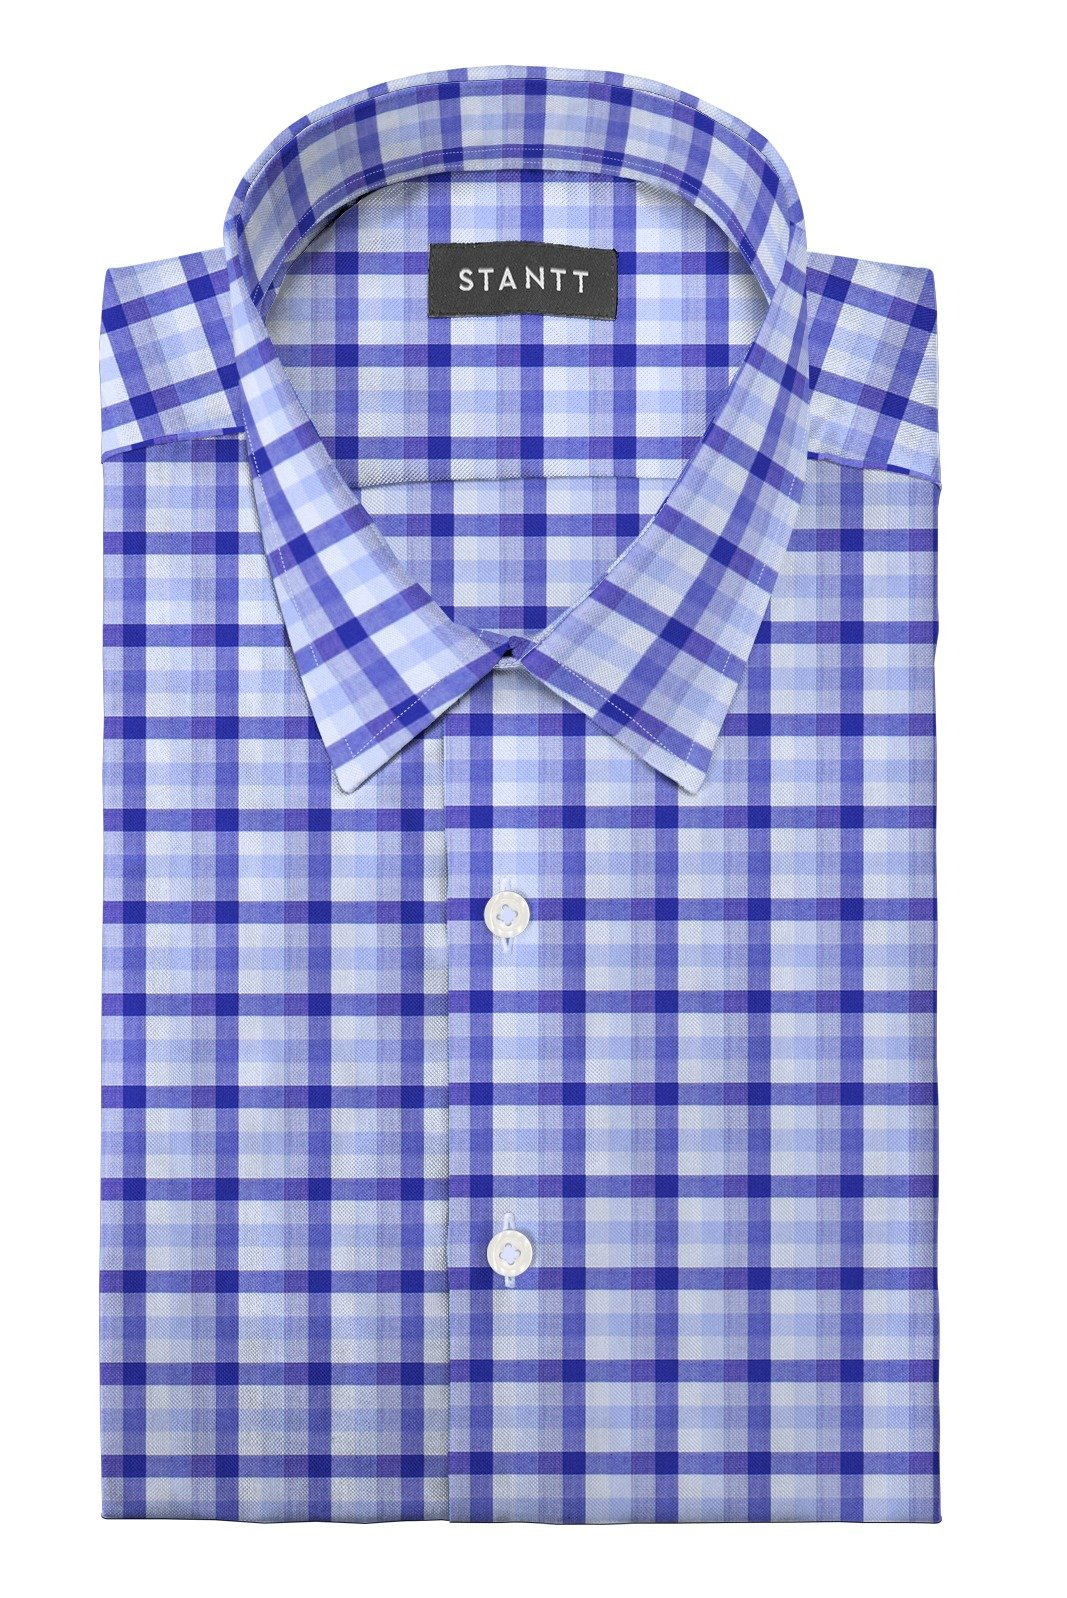 Blue Multi Check: Semi-Spread Collar, French Cuff